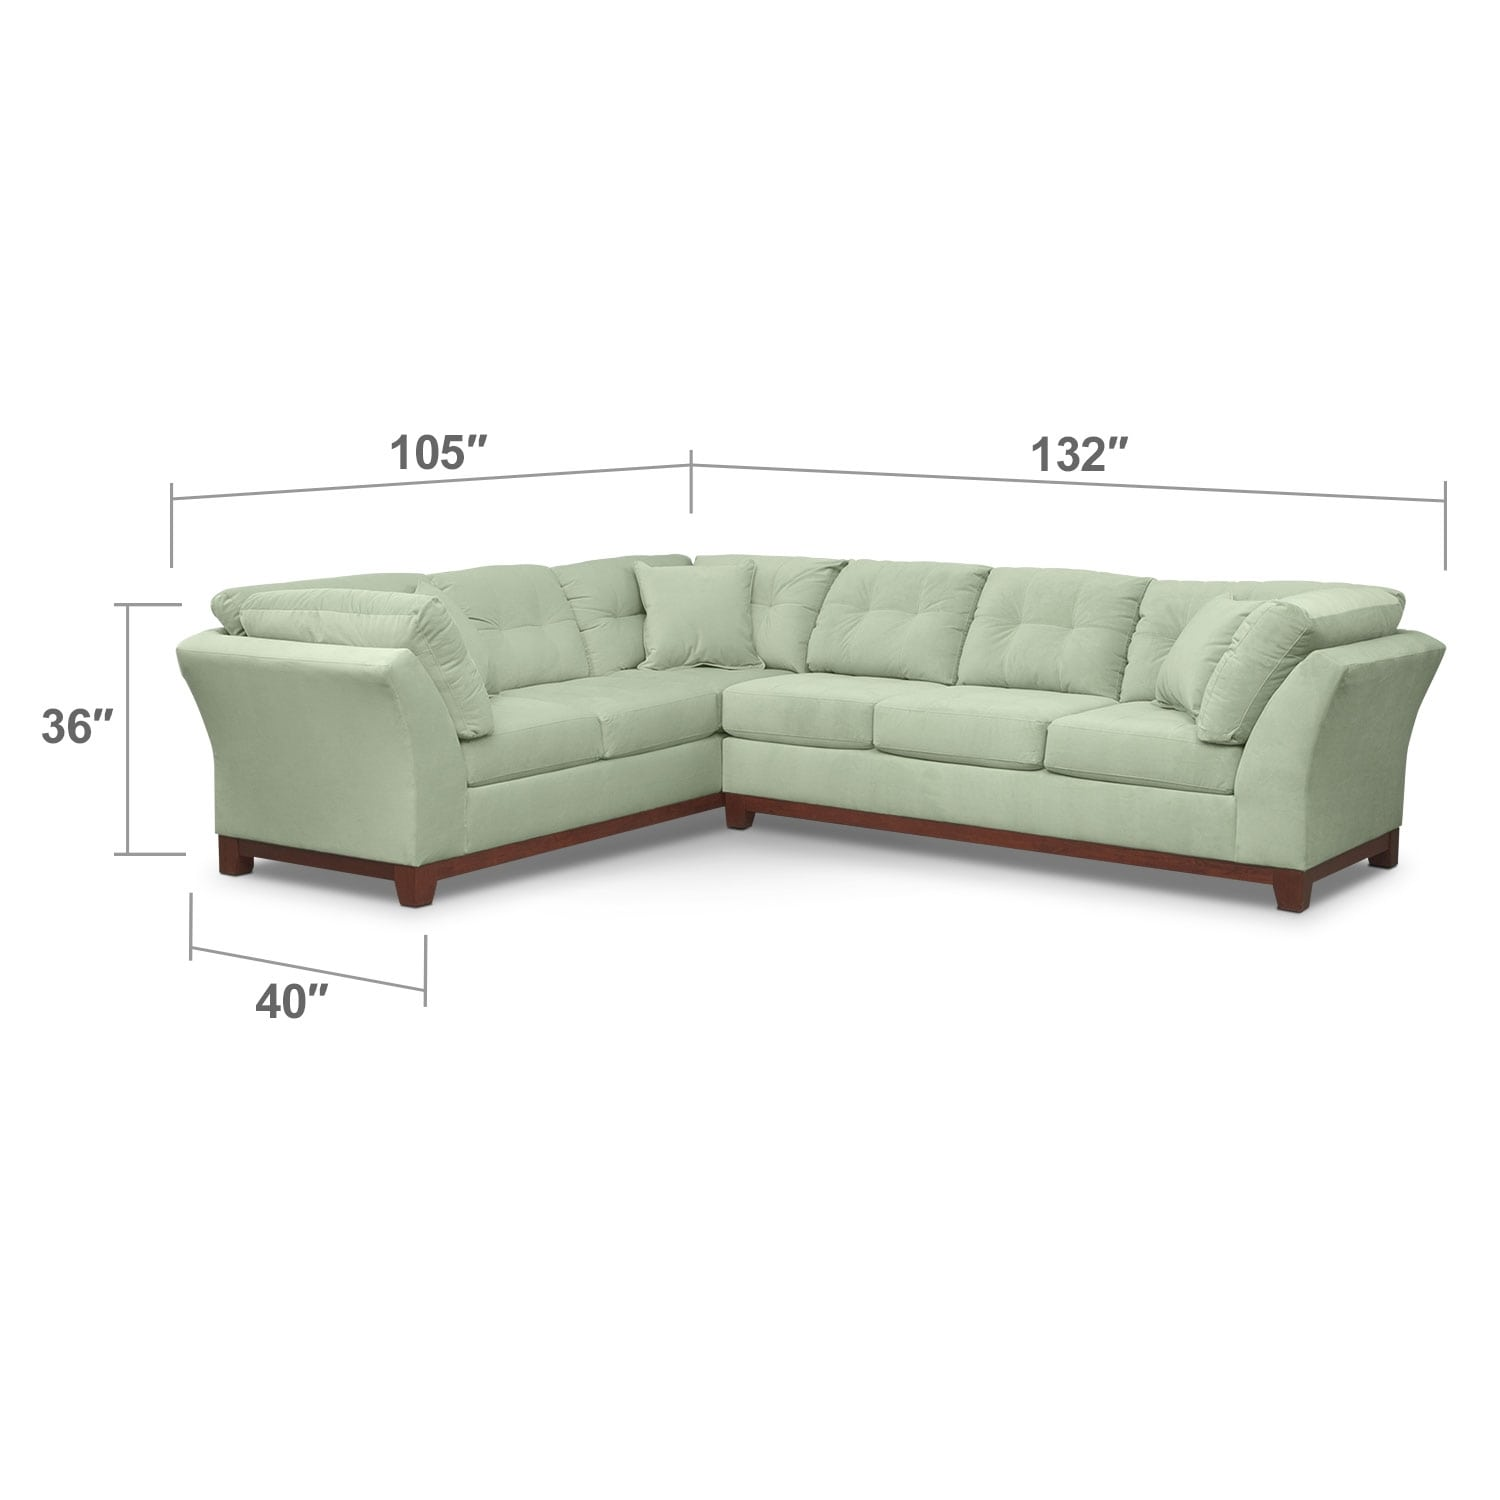 """Living Room Furniture - Solace 2-Piece Right-Facing 132"""" Sofa Sectional - Spa"""